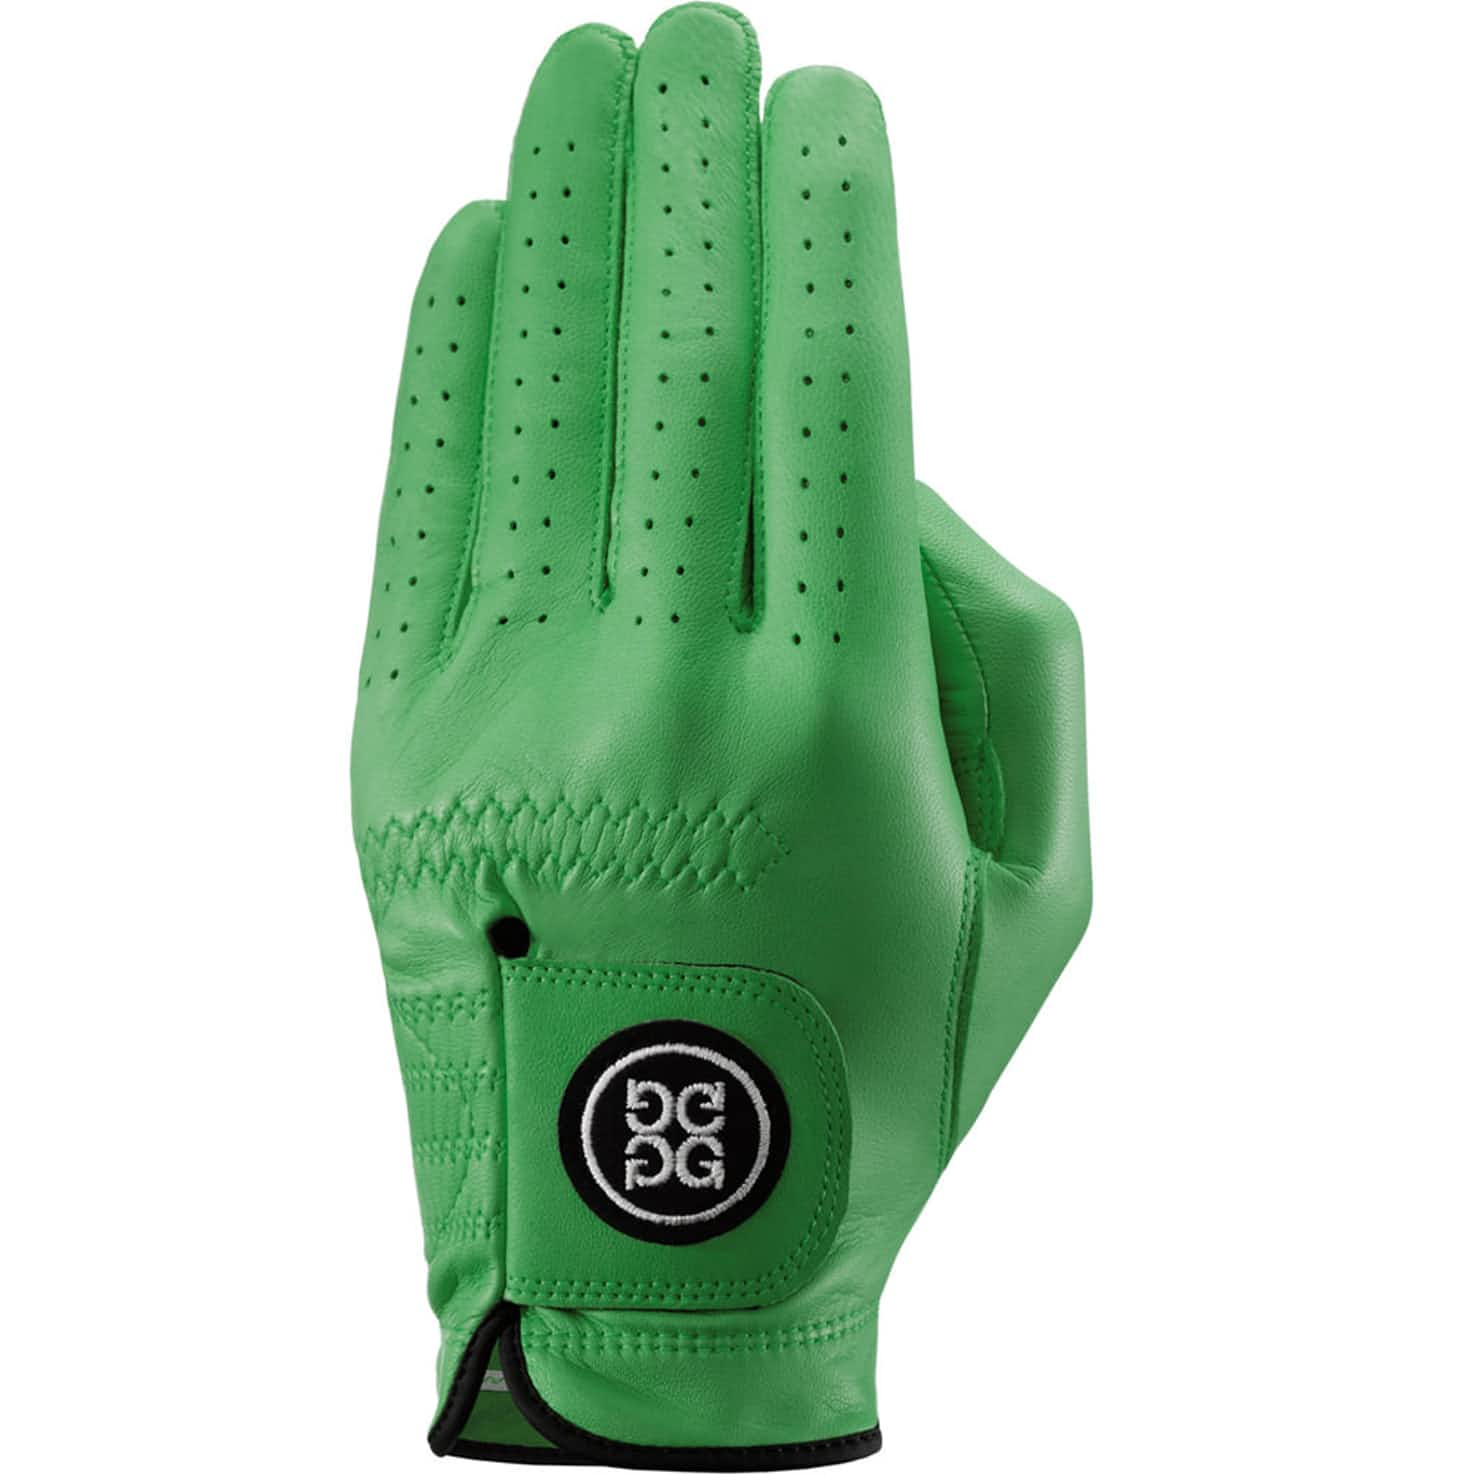 JUNIOR Left Glove Clover - 2019